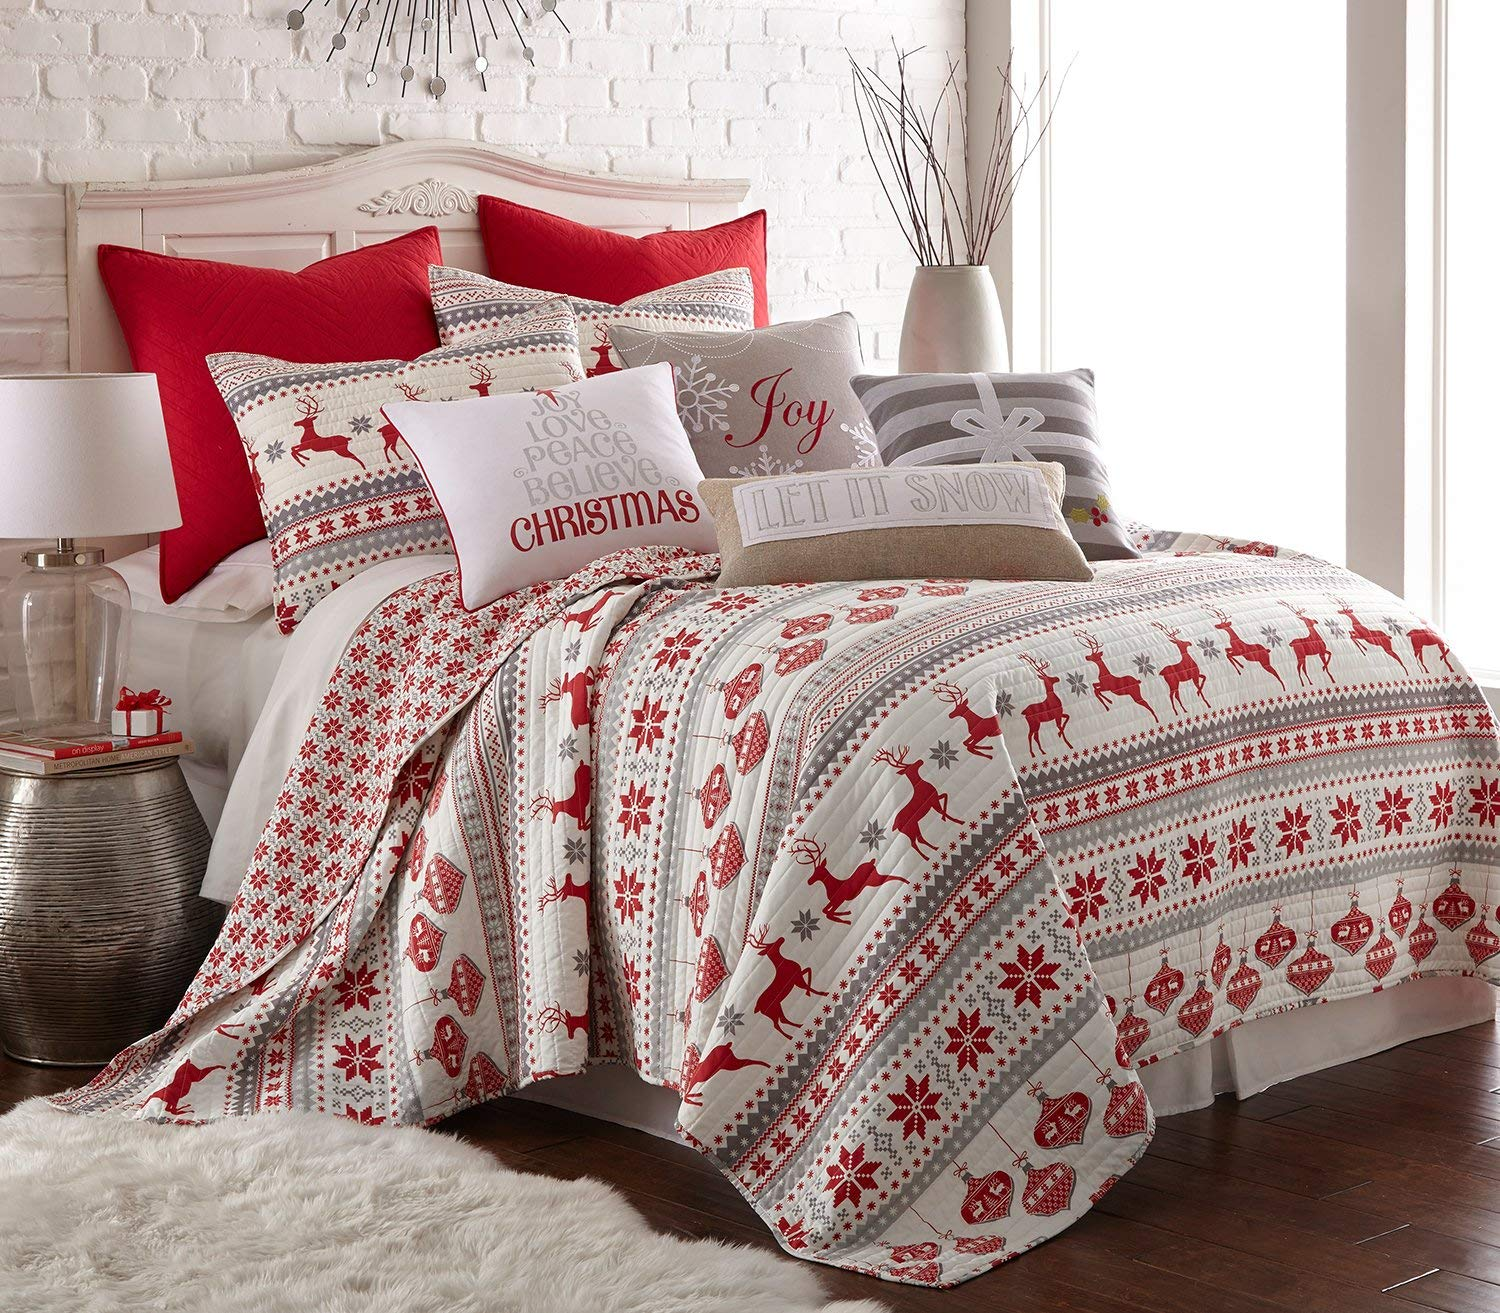 Levtex Silent Night Quilt Set - Christmas Bed Quits